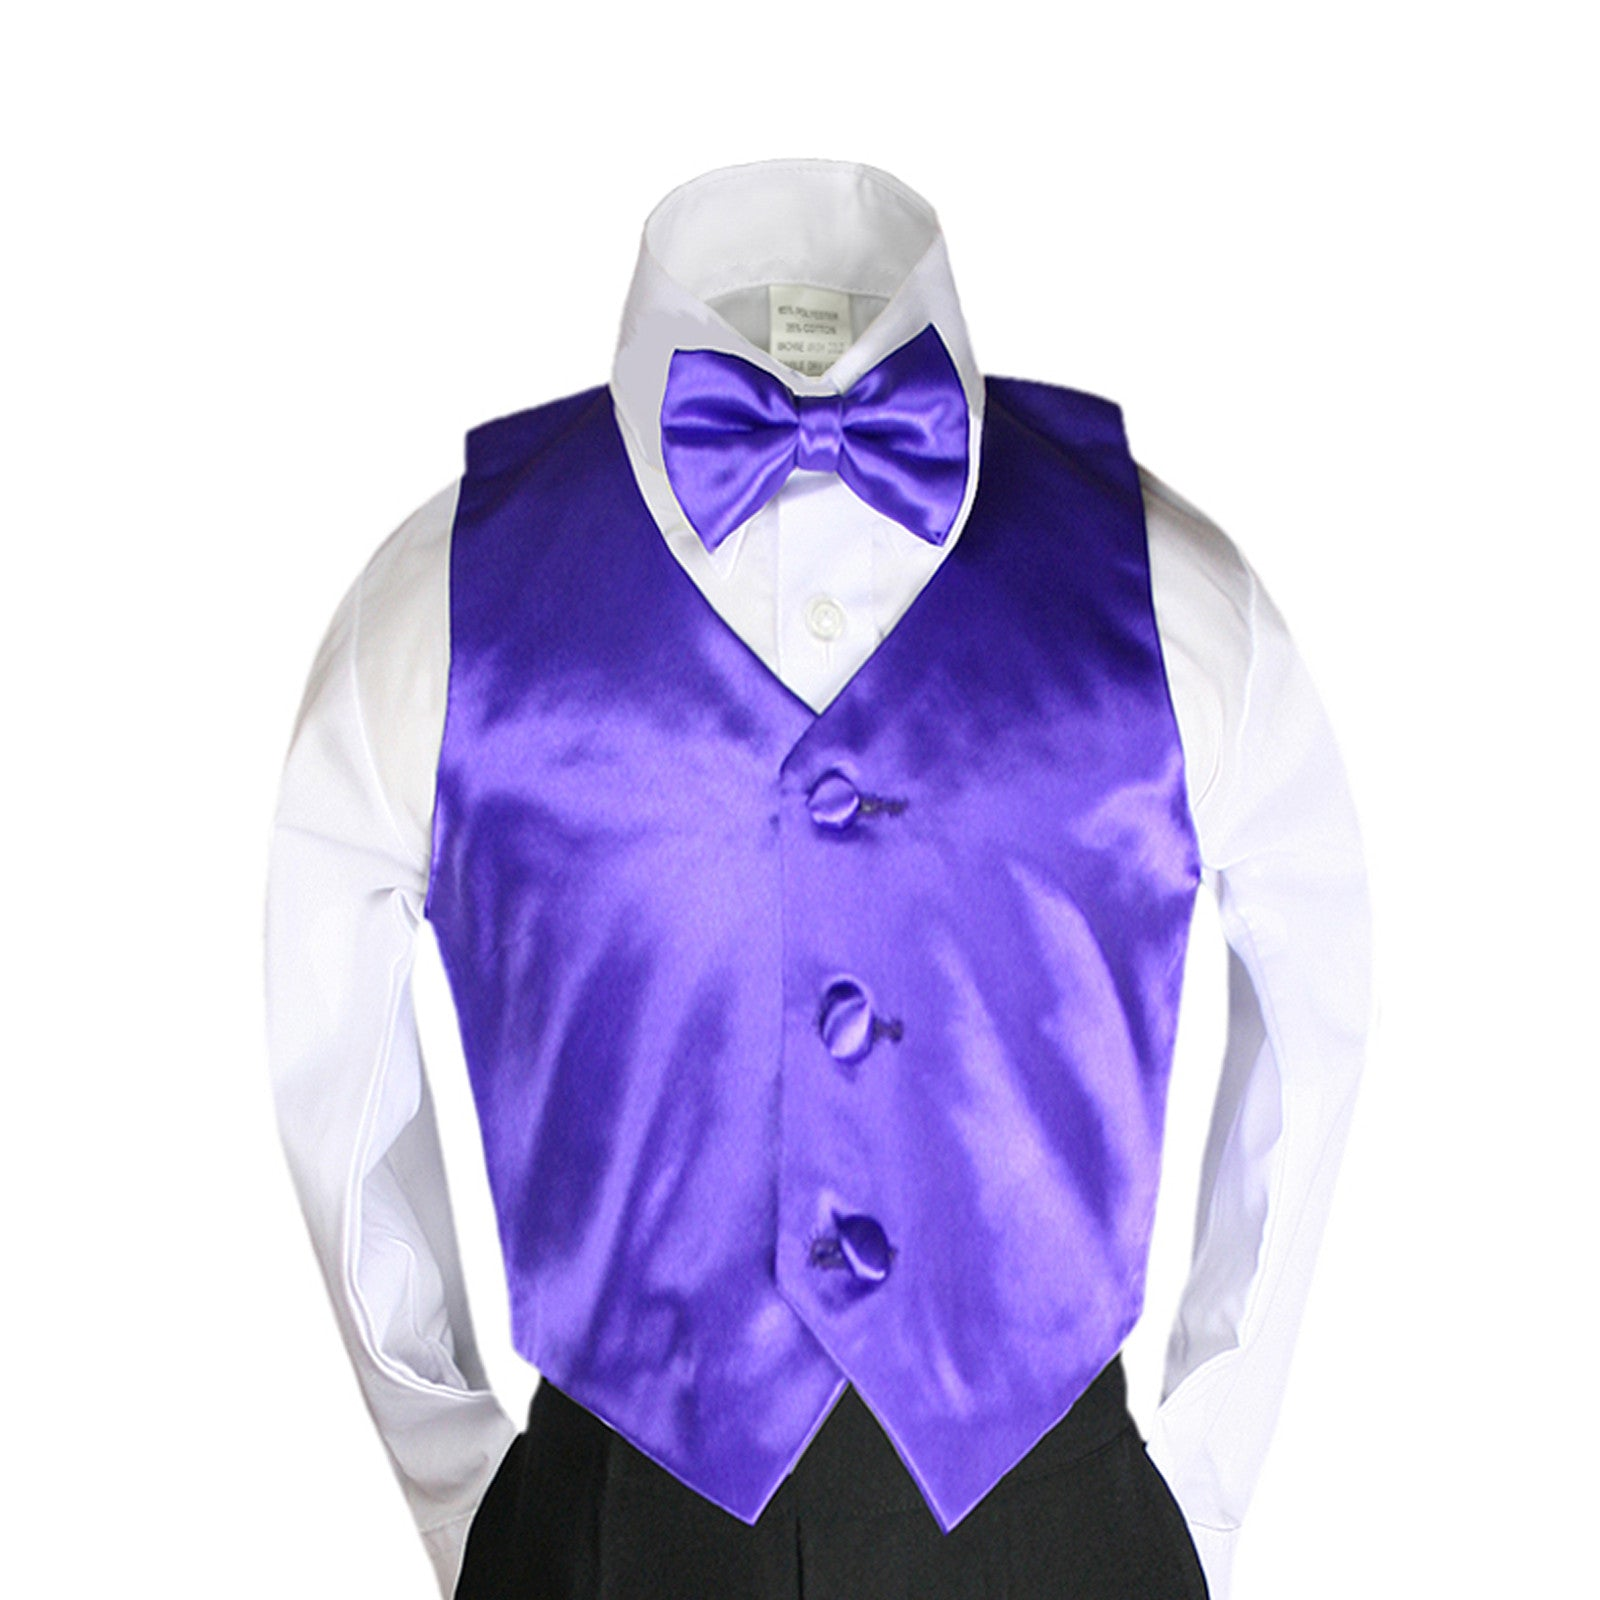 Unotux 2pc Boys Satin Silver Vest and Necktie Sets from Baby to Teen